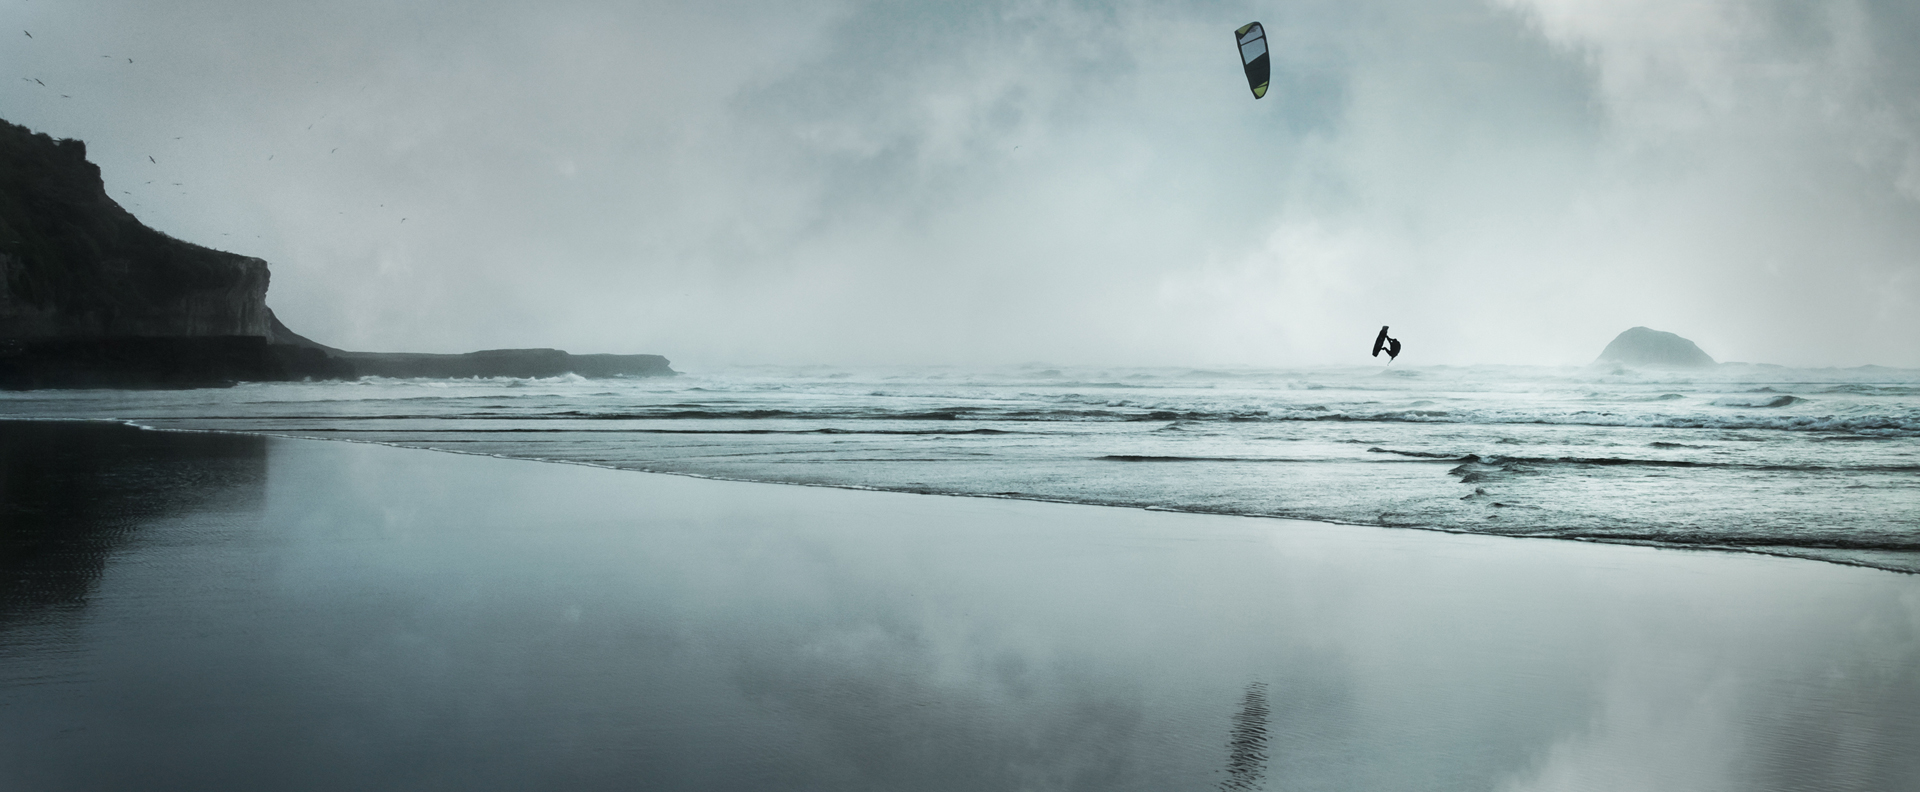 Kitesurfer at Muriwai